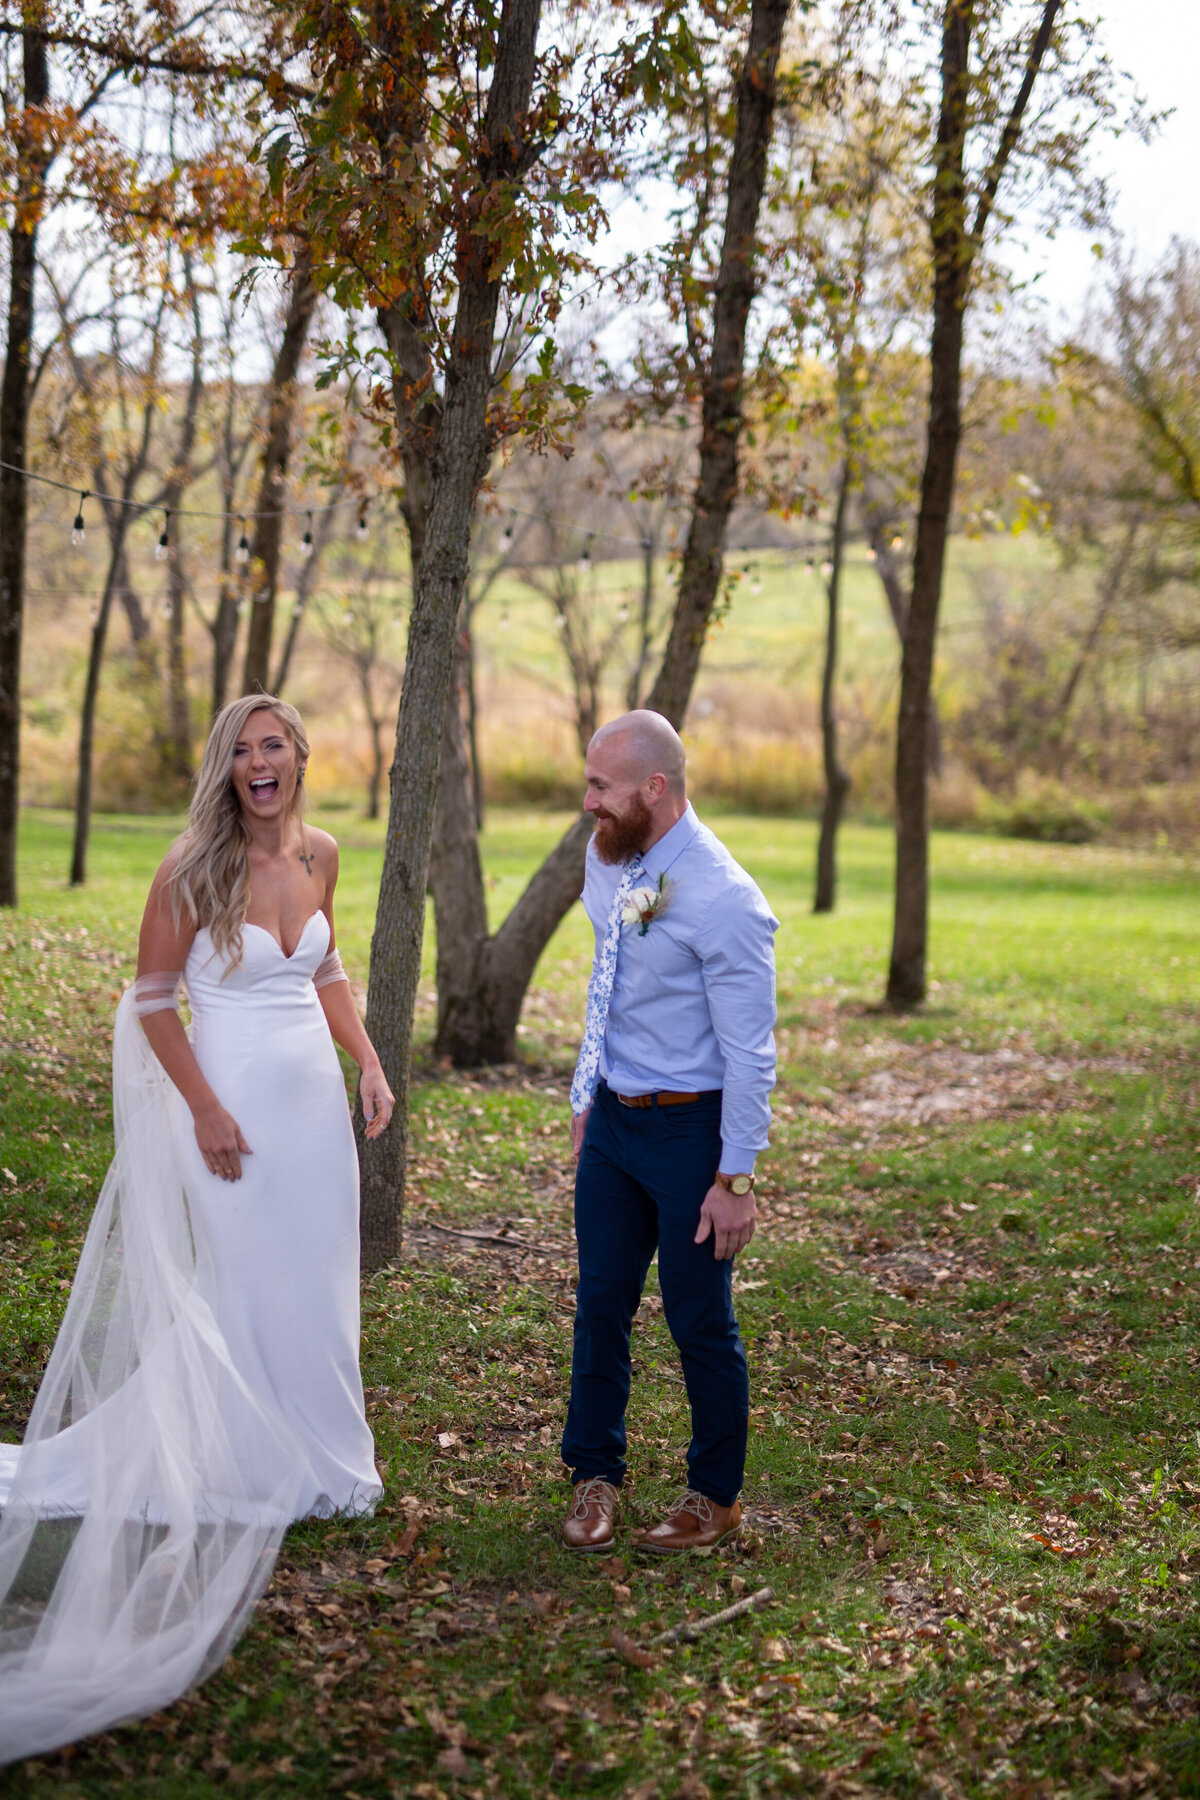 Barnes-place-des-monines-iowa-rustic-wedding-photo-ideasPhoto-42